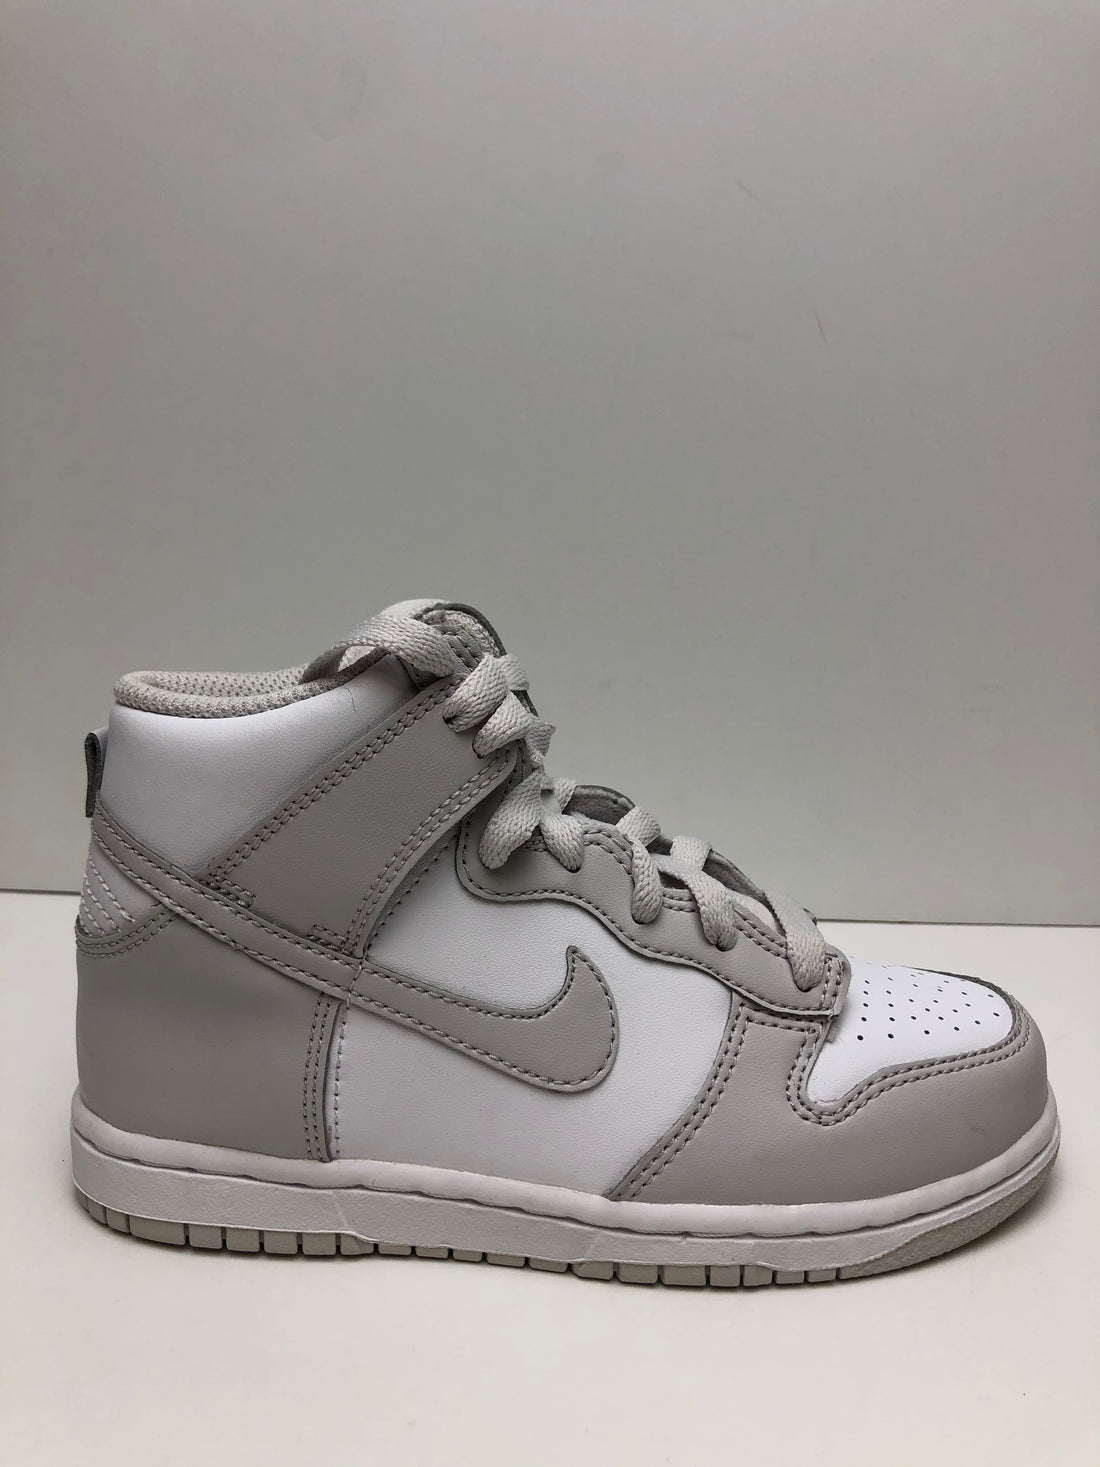 Nike Dunk High Retro White Vast Grey (PS)